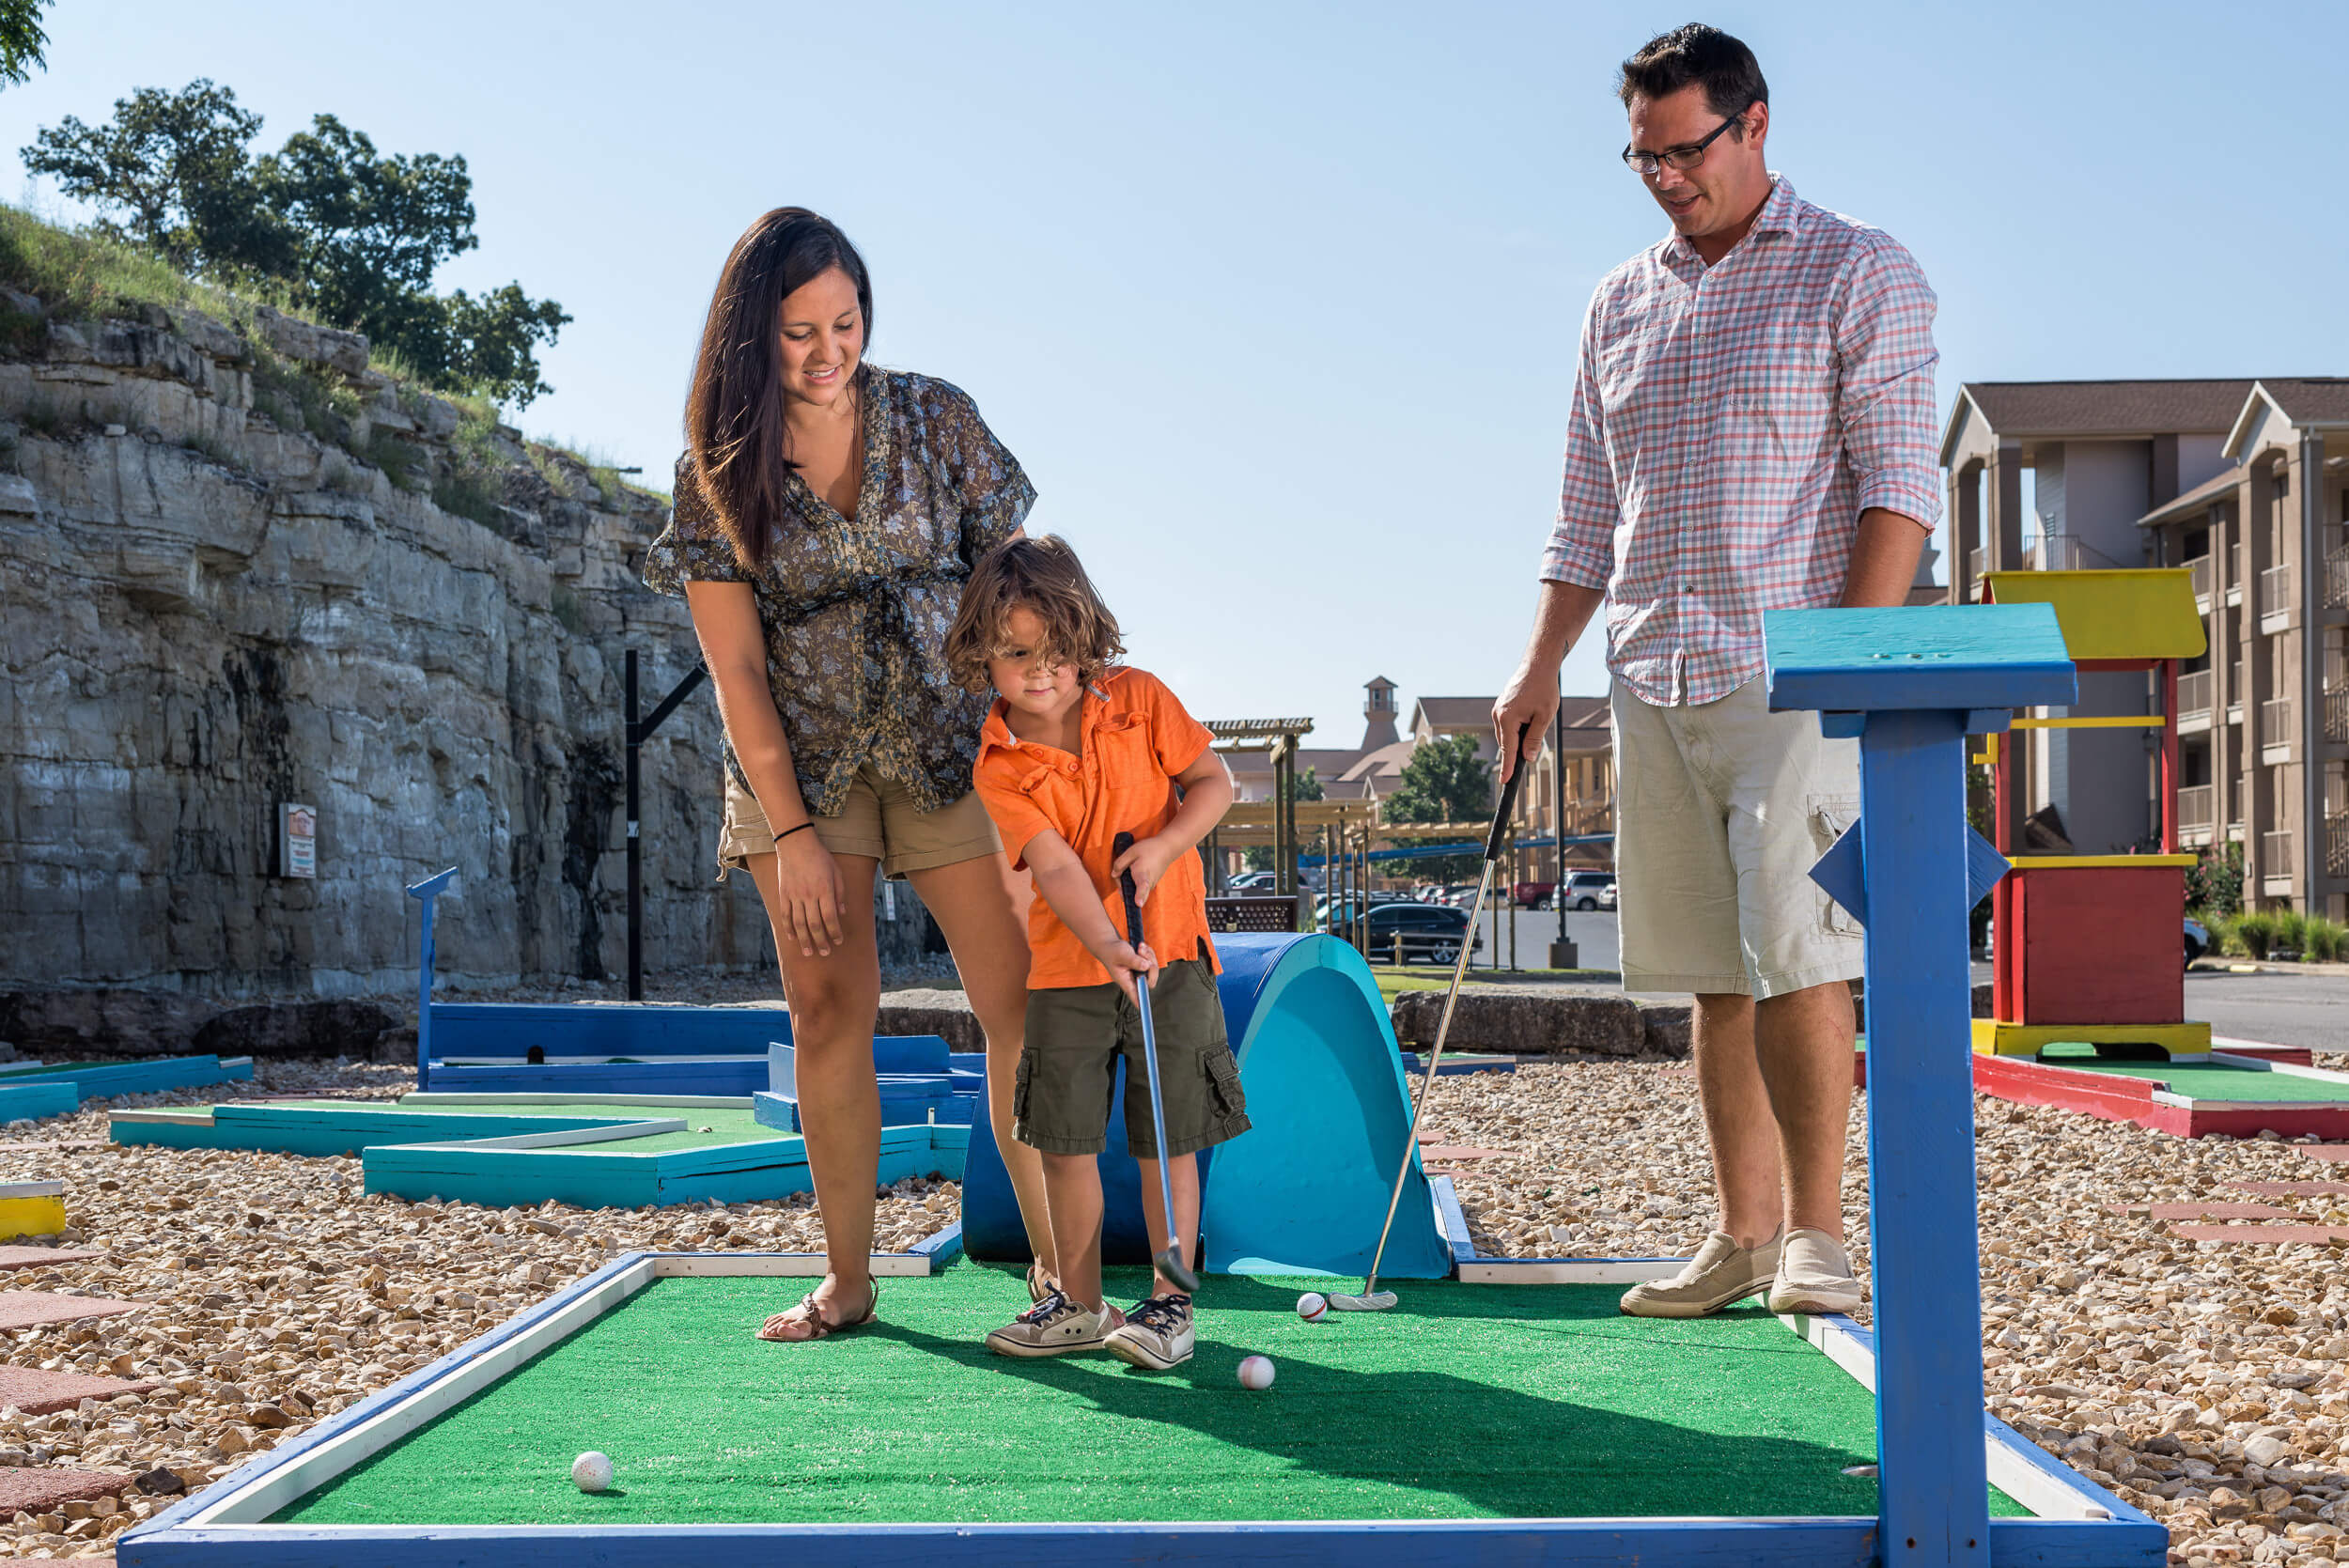 Family golfing at our resorts in Branson MO | Westgate Branson Lakes Resort | Westgate Resorts in Missouri